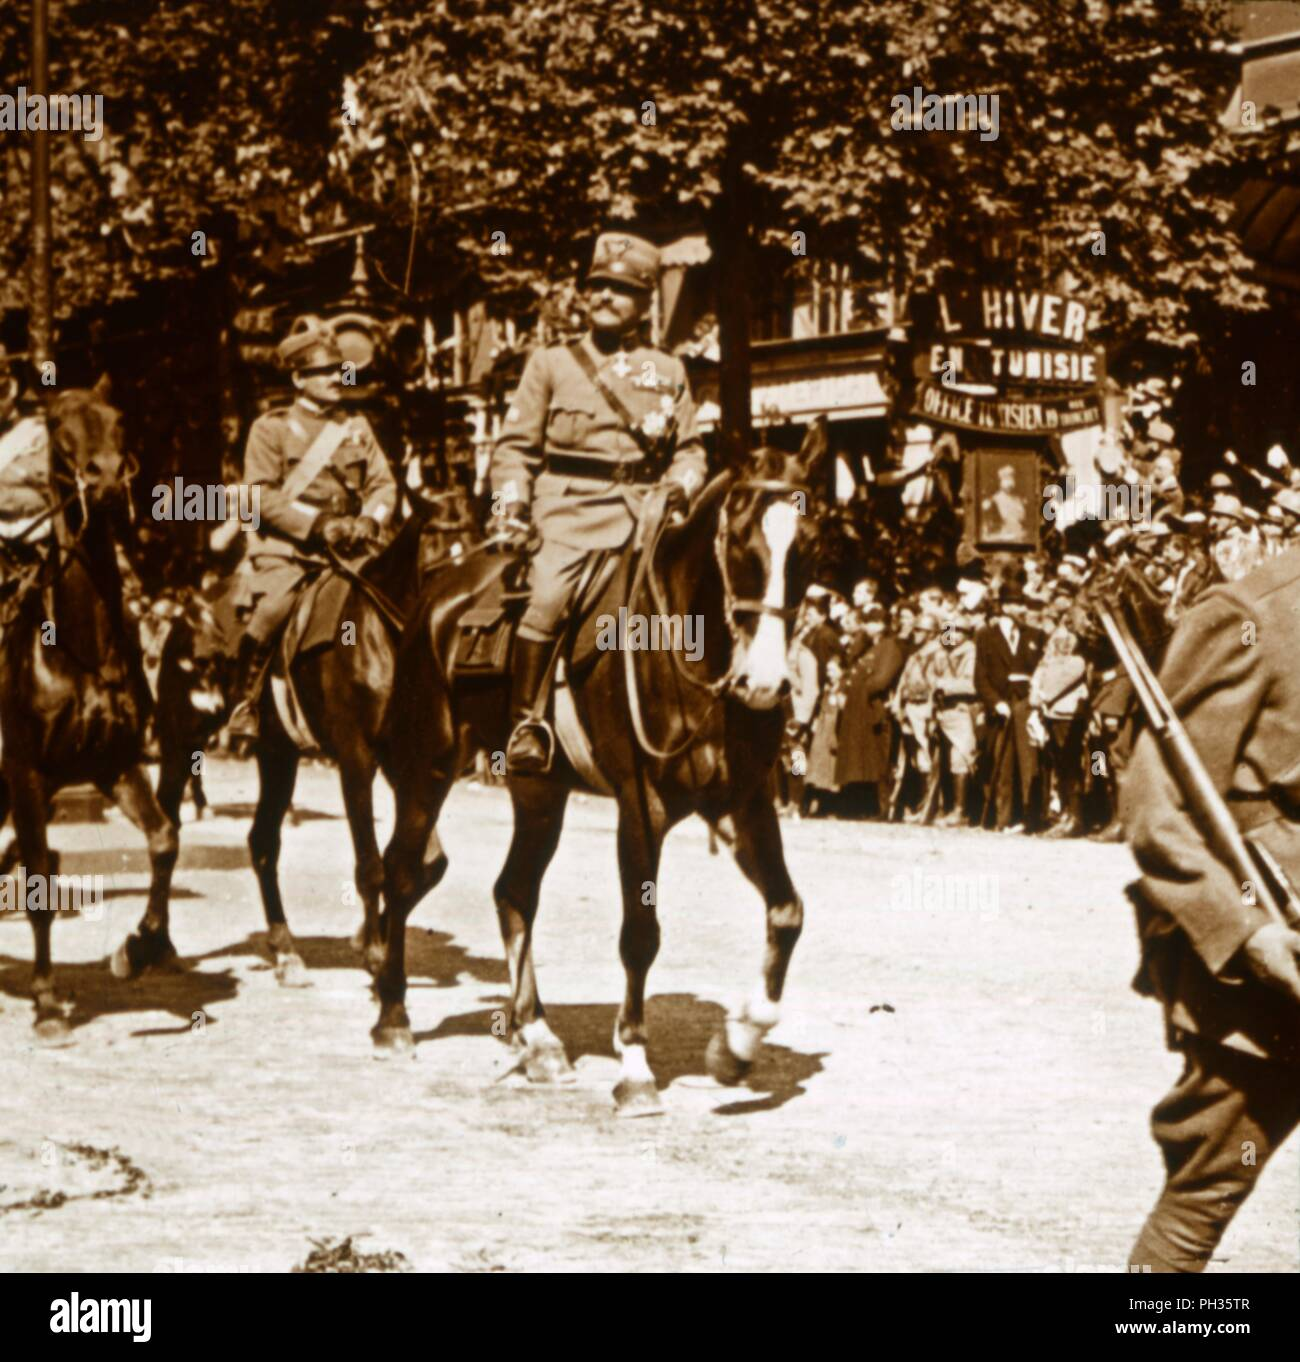 Italian officers during victory parade, 1918. Photograph from a series of glass plate stereoview images depicting scenes from World War I (1914-1918). - Stock Image